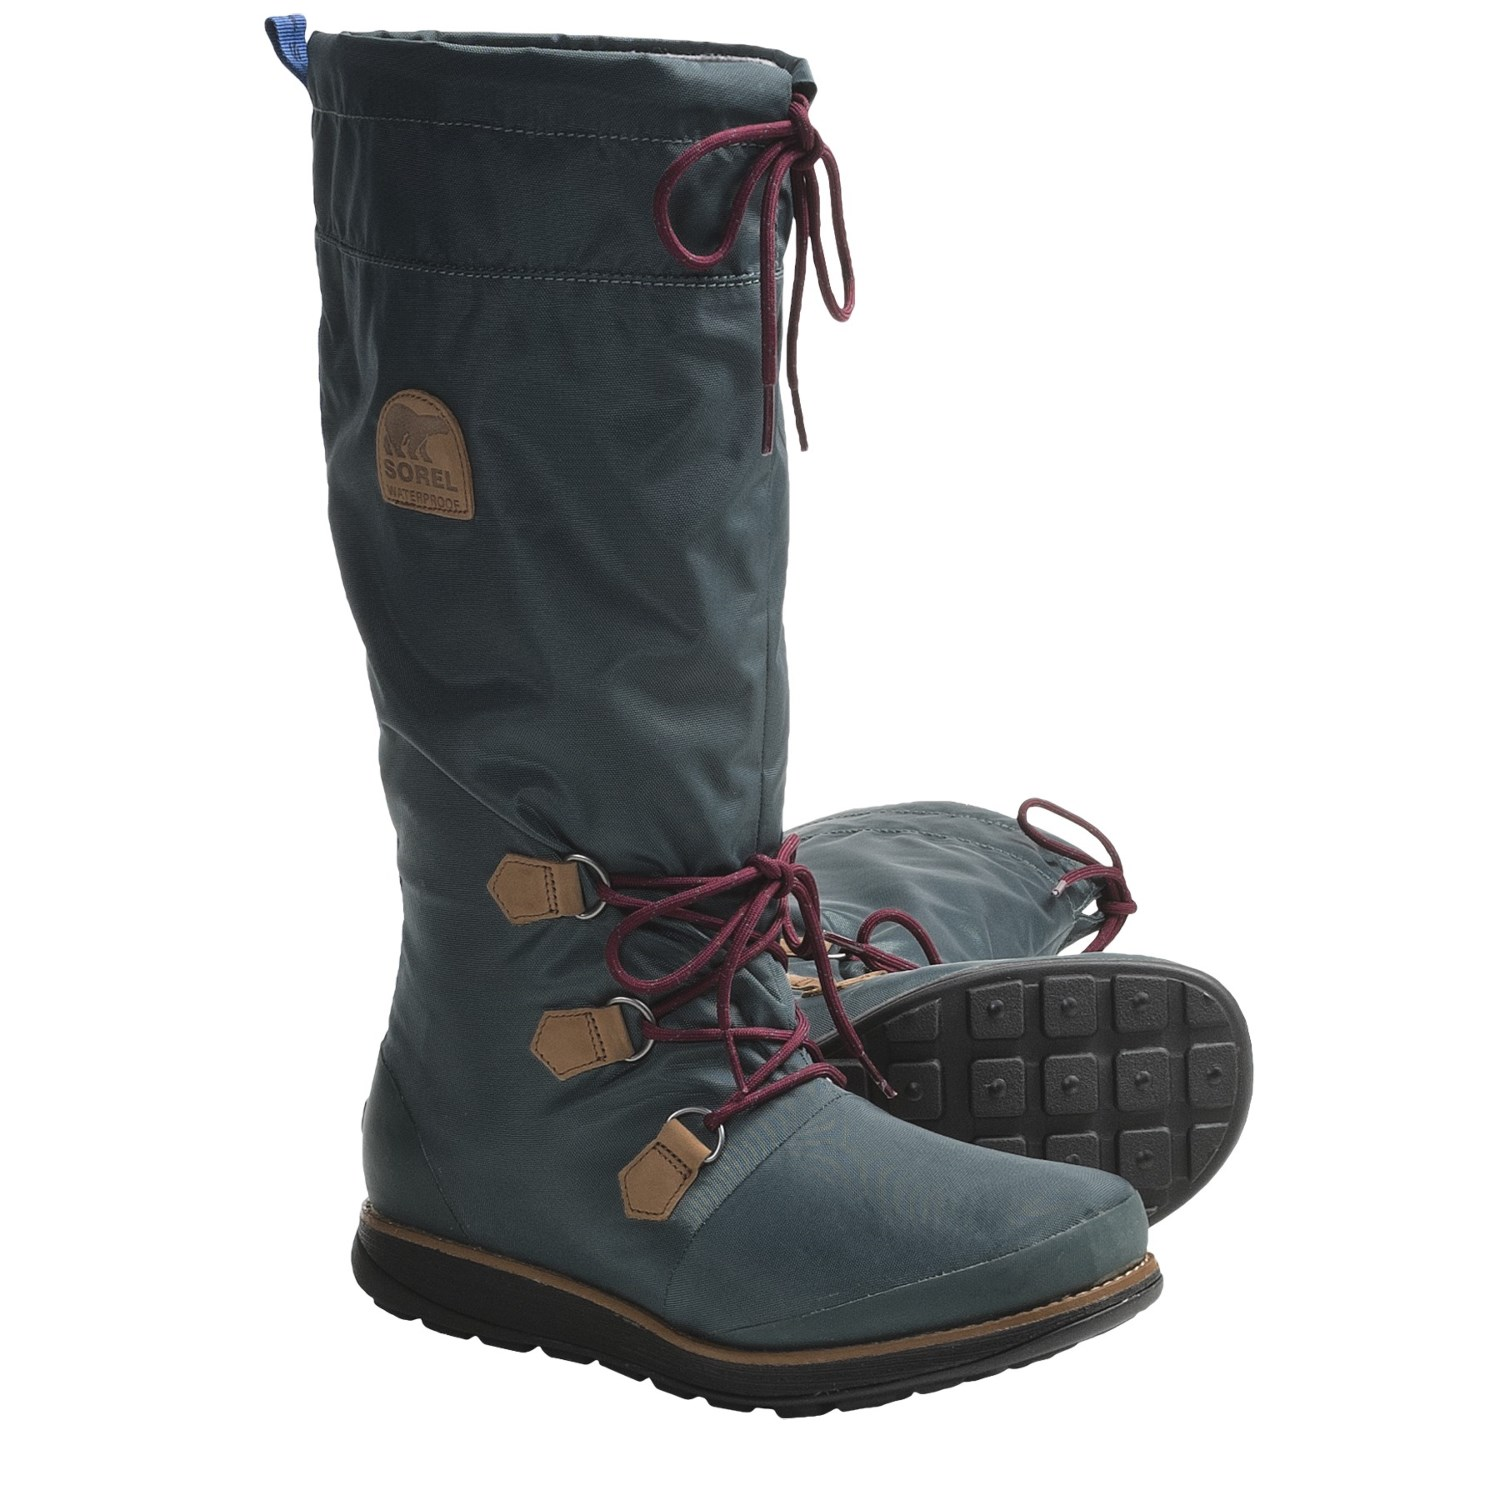 sorel 88 winter pac boots waterproof insulated for